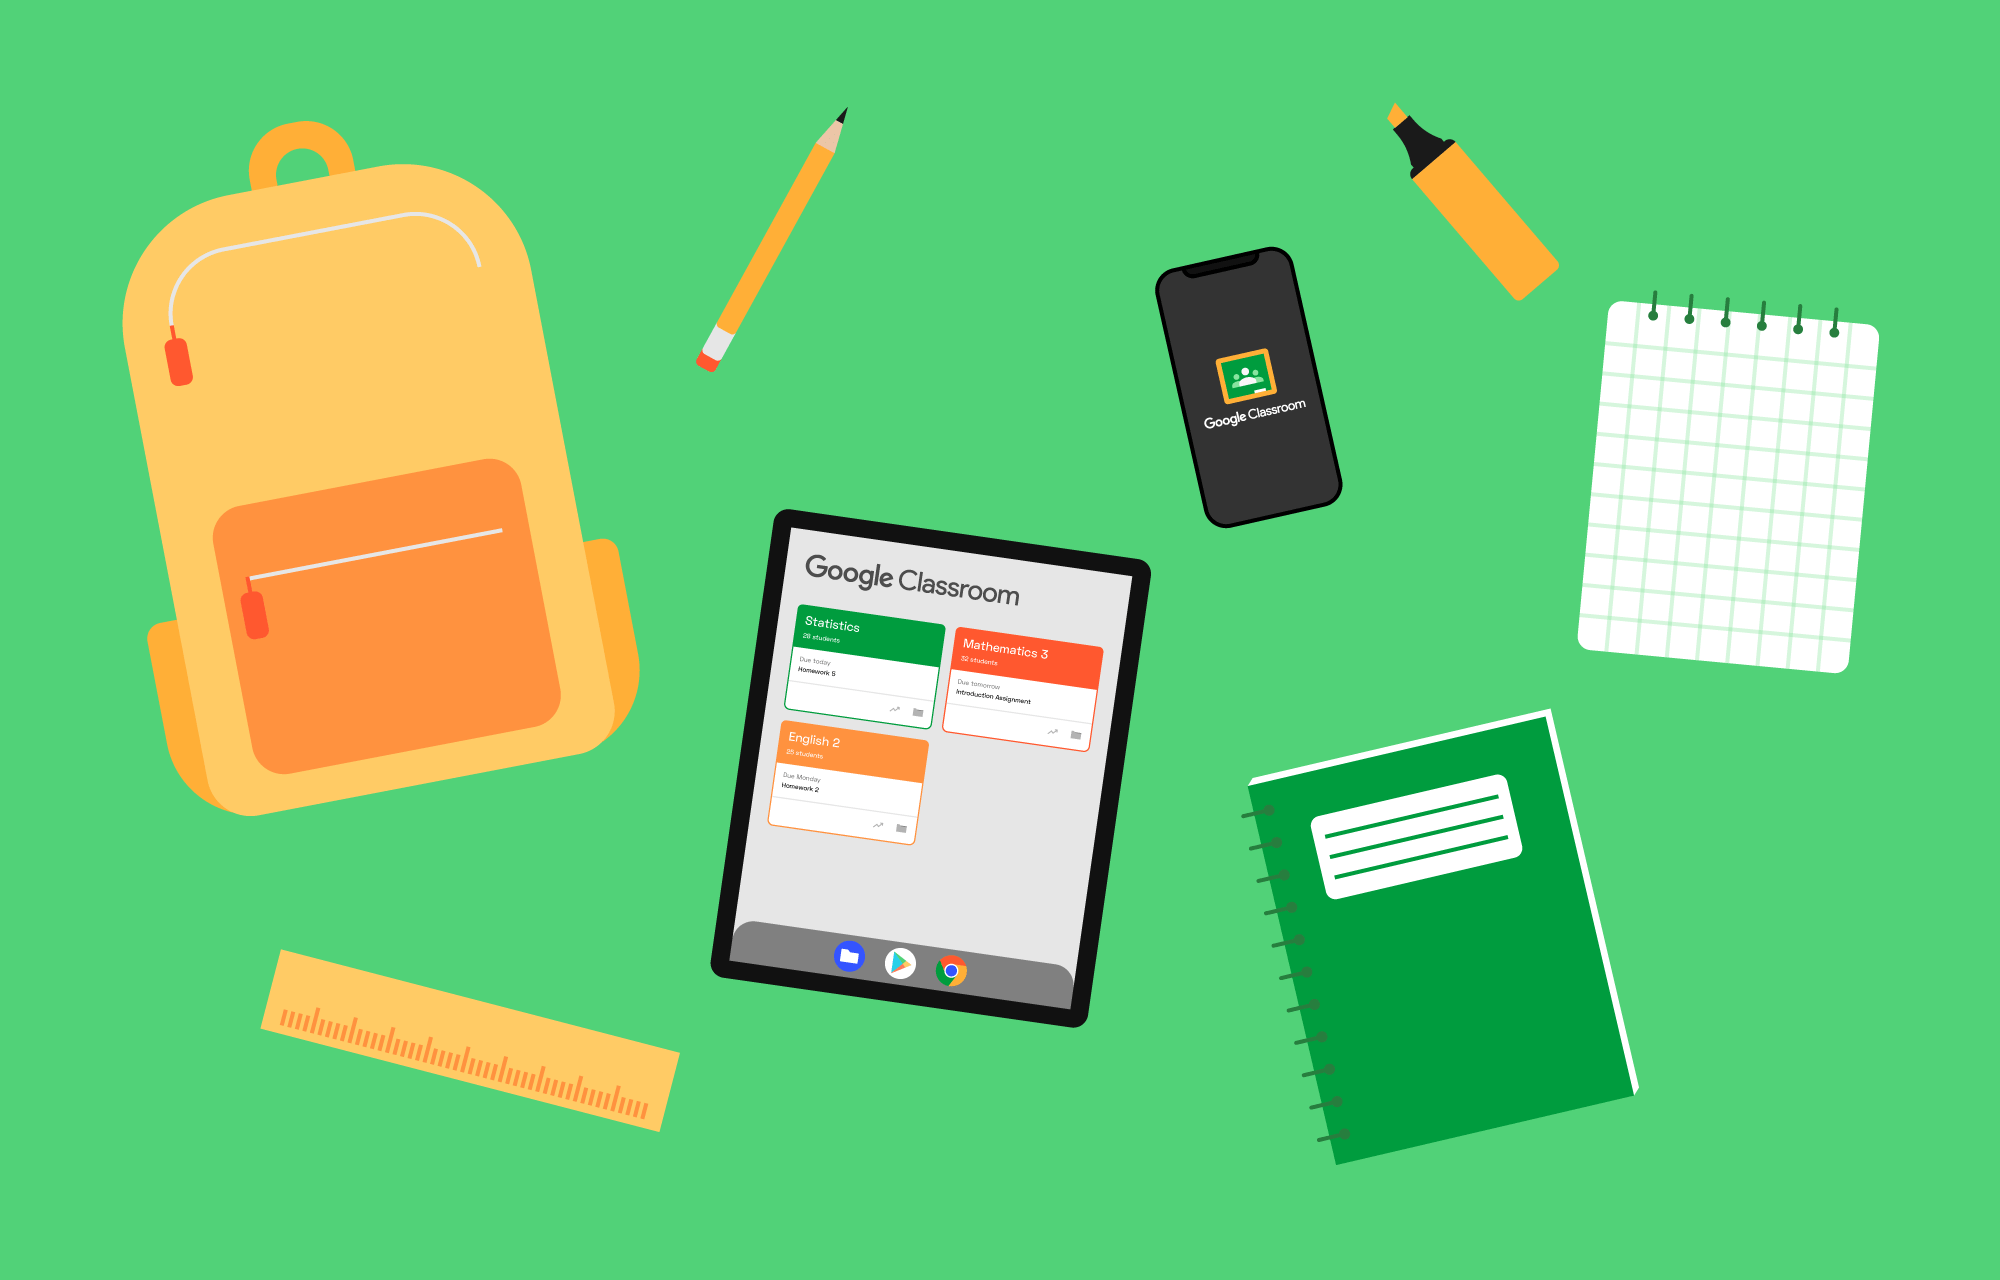 School equipment and Google Classroom on a tabled and phone.